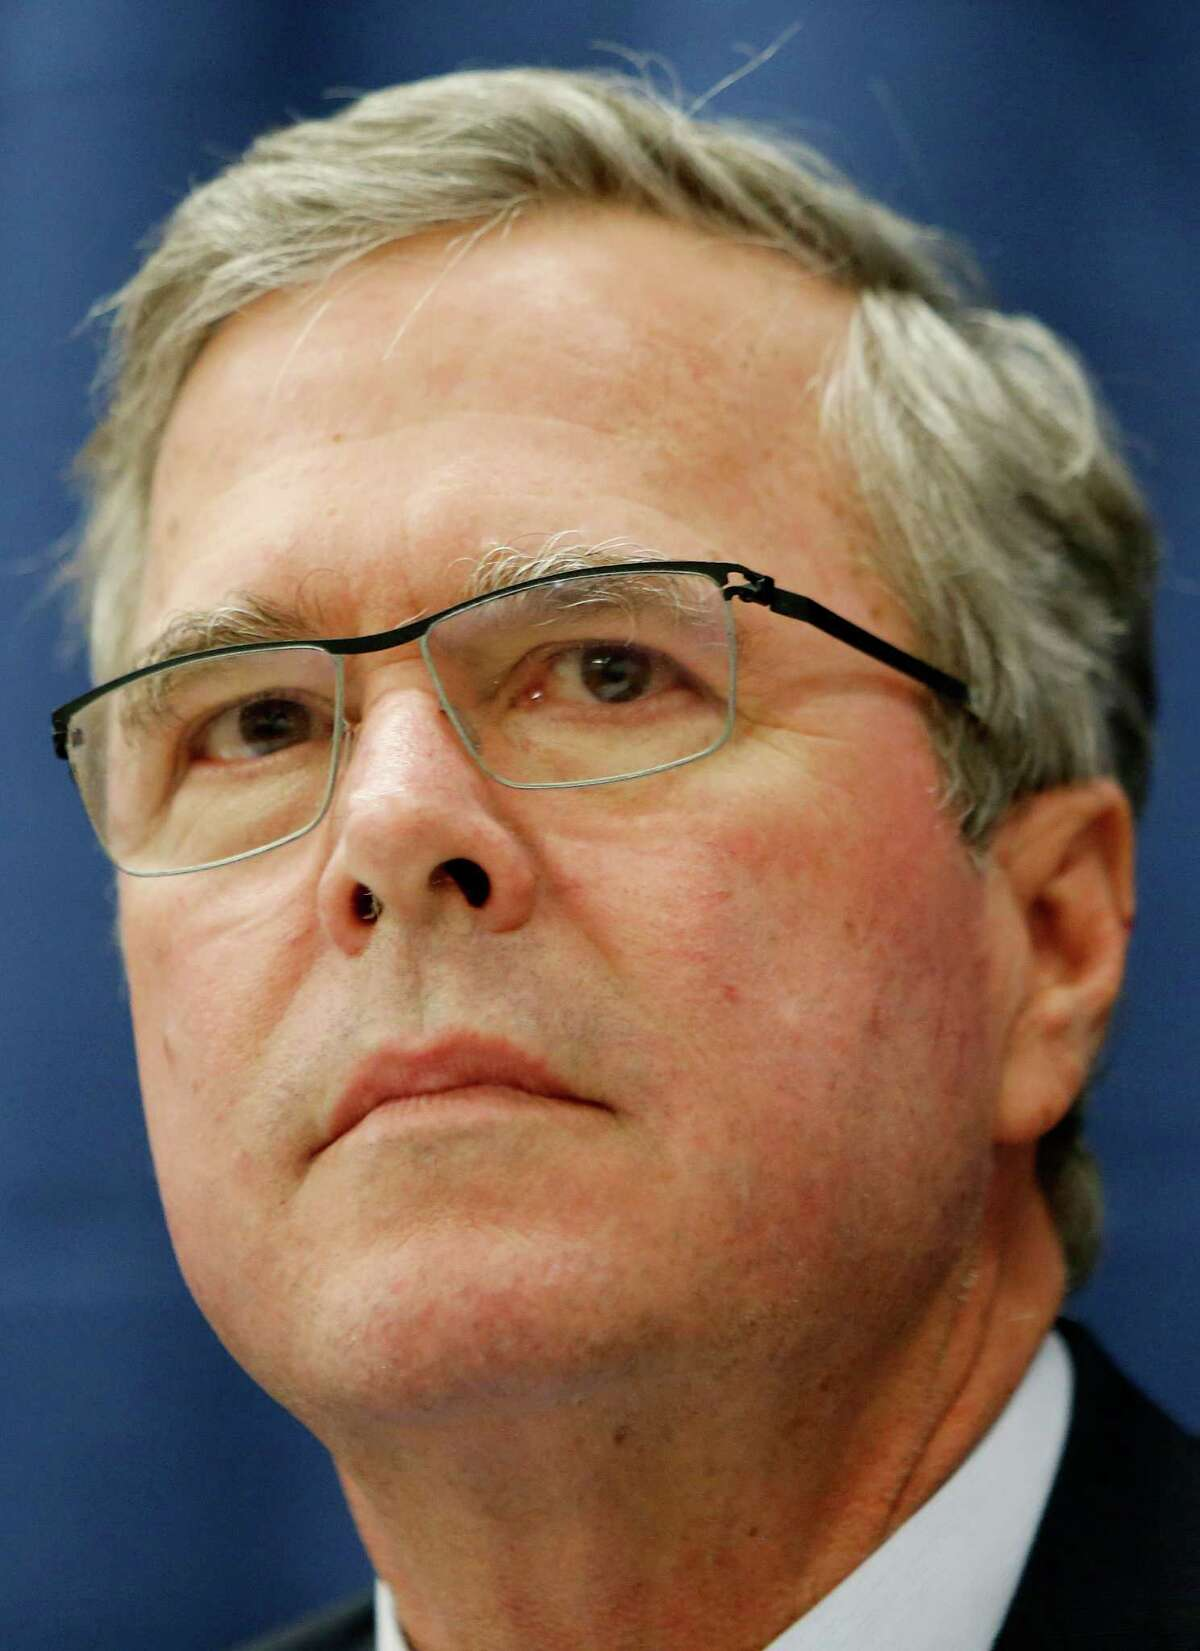 Former Florida Gov. Jeb Bush waits for questions during a meeting with the Nashua Chamber of Commerce, Friday, March 13, 2015, in Hudson, N.H. On his opening foray into New Hampshire for his likely campaign for the Republican presidential nomination, Bush challenged voters here to spend time learning about the issues and avoid shrill partisan sniping. (AP Photo/Jim Cole)